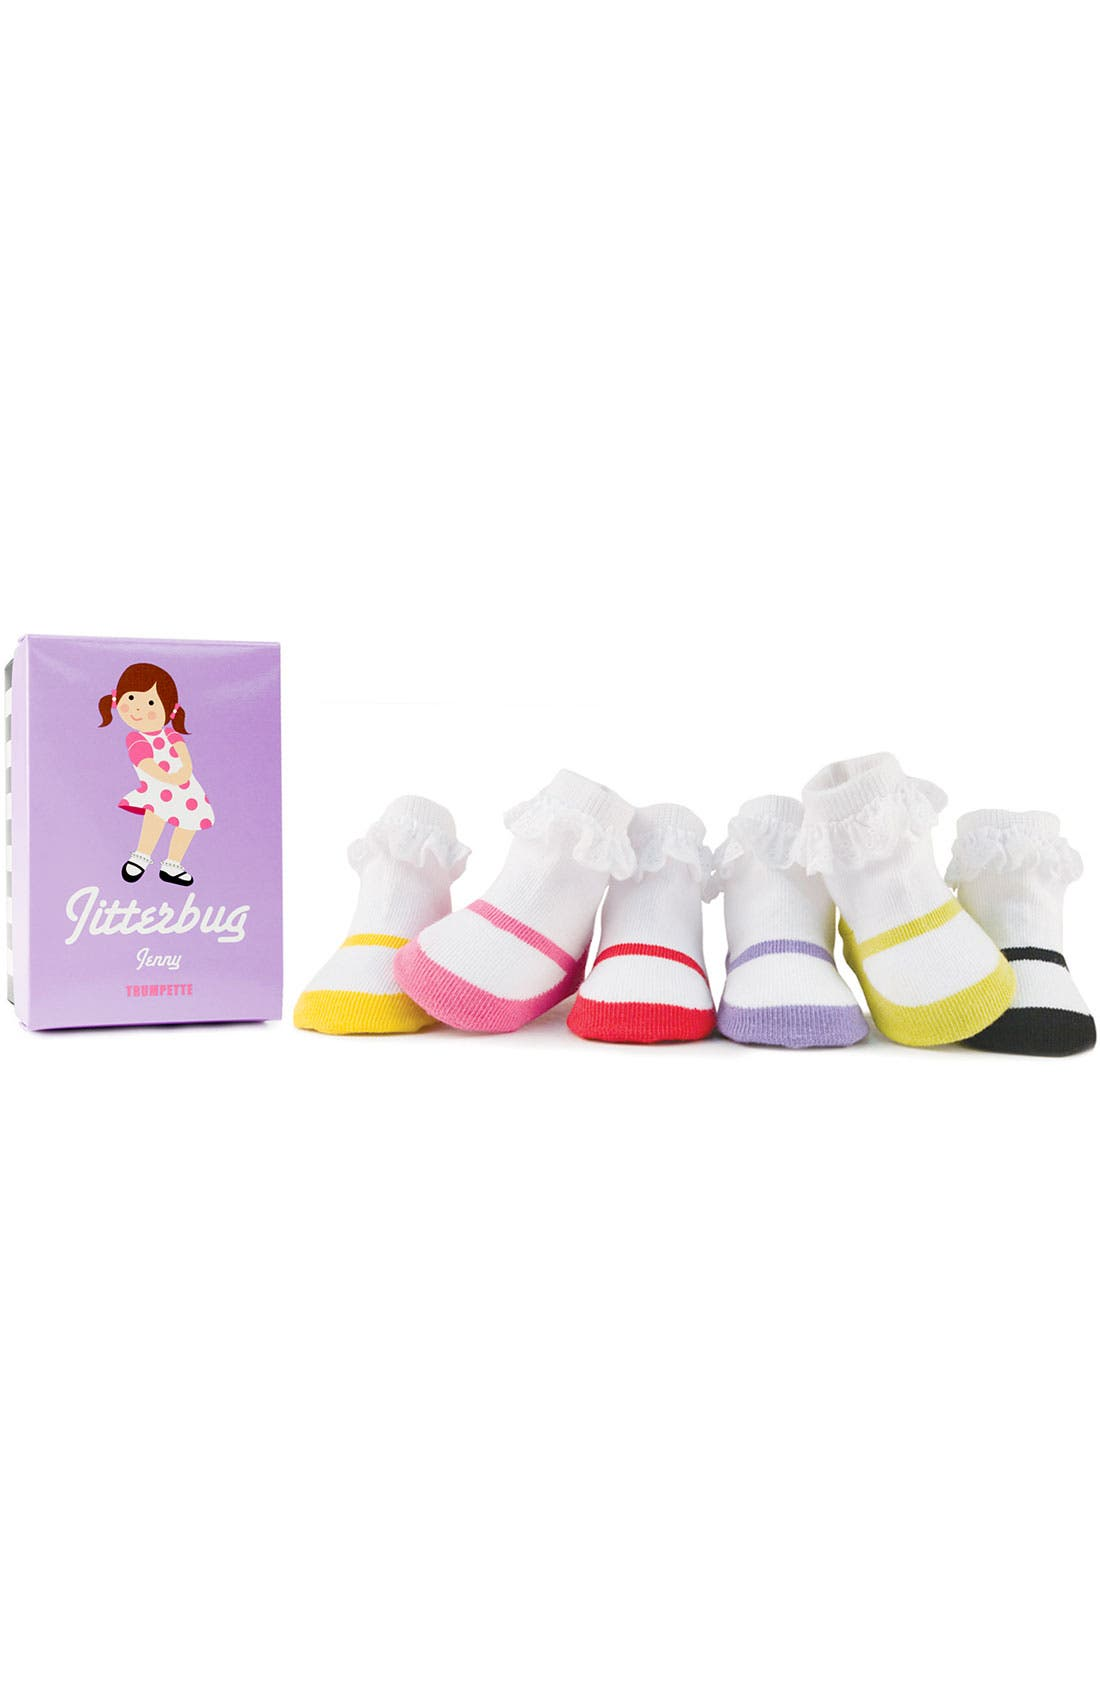 Trumpette 'Jitterbug' Socks (6-Pack) (Infant)